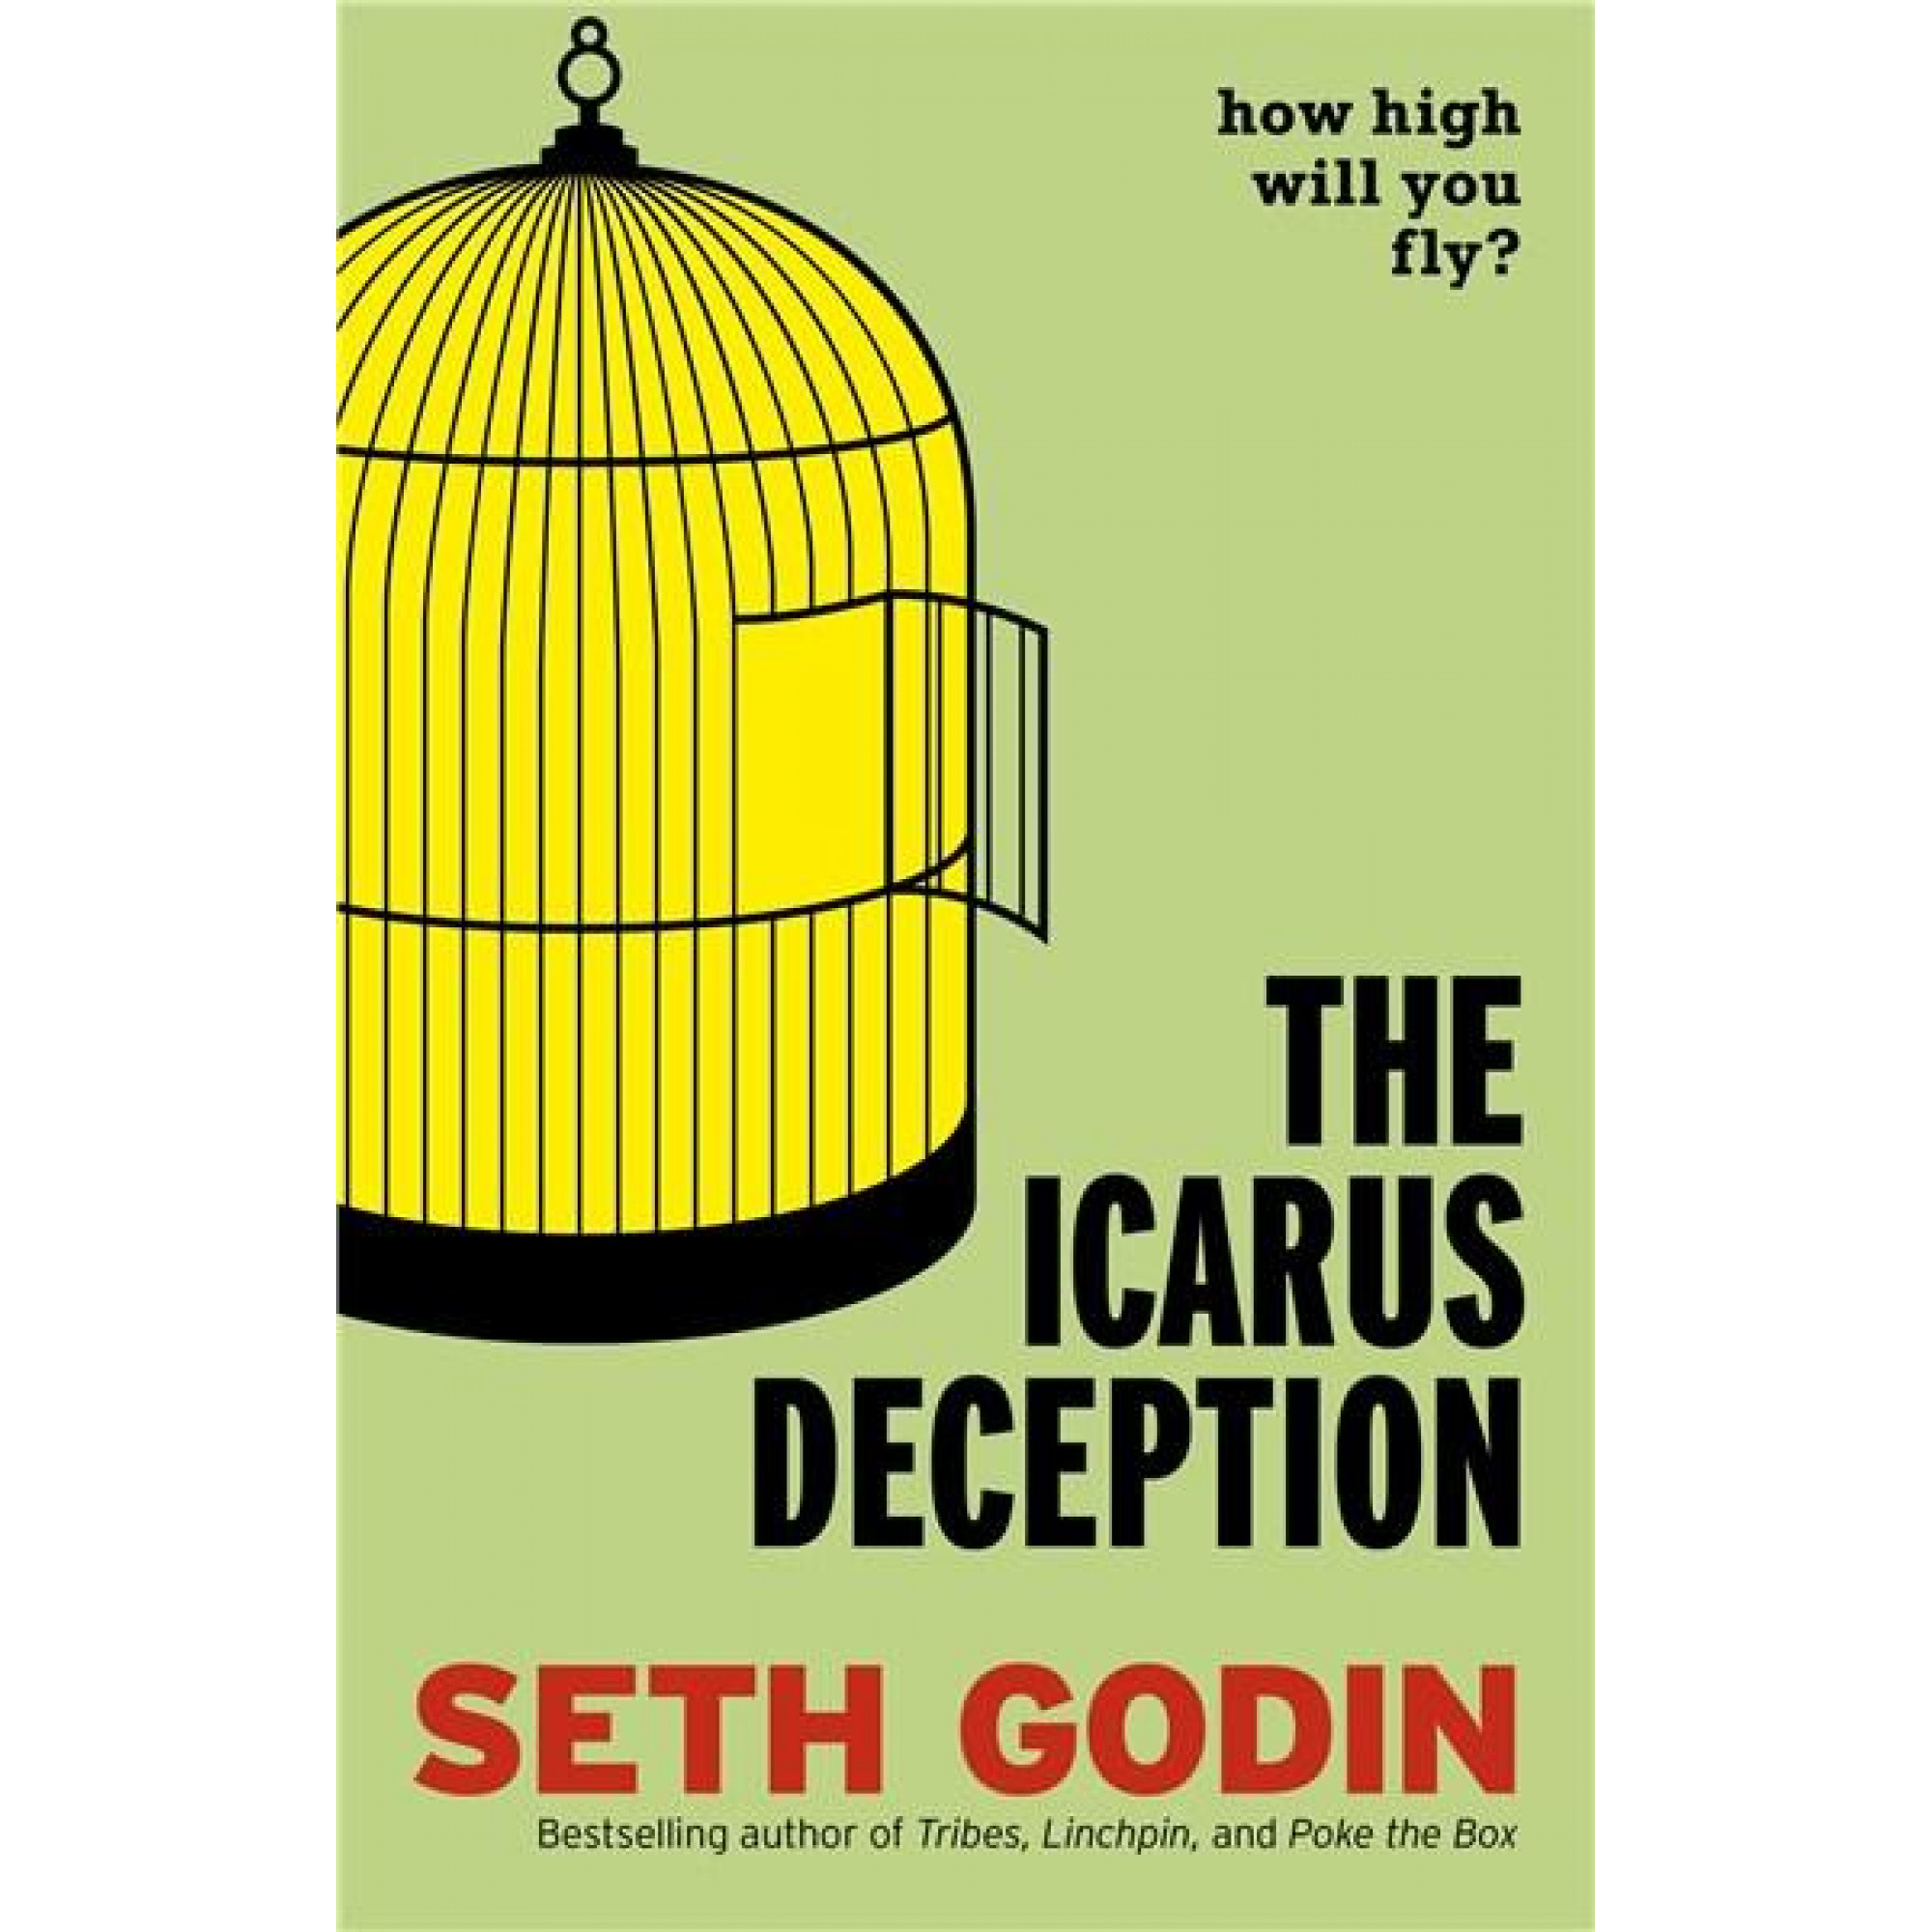 The Icarus Deception: How High Will You Fly? | Seth Godin